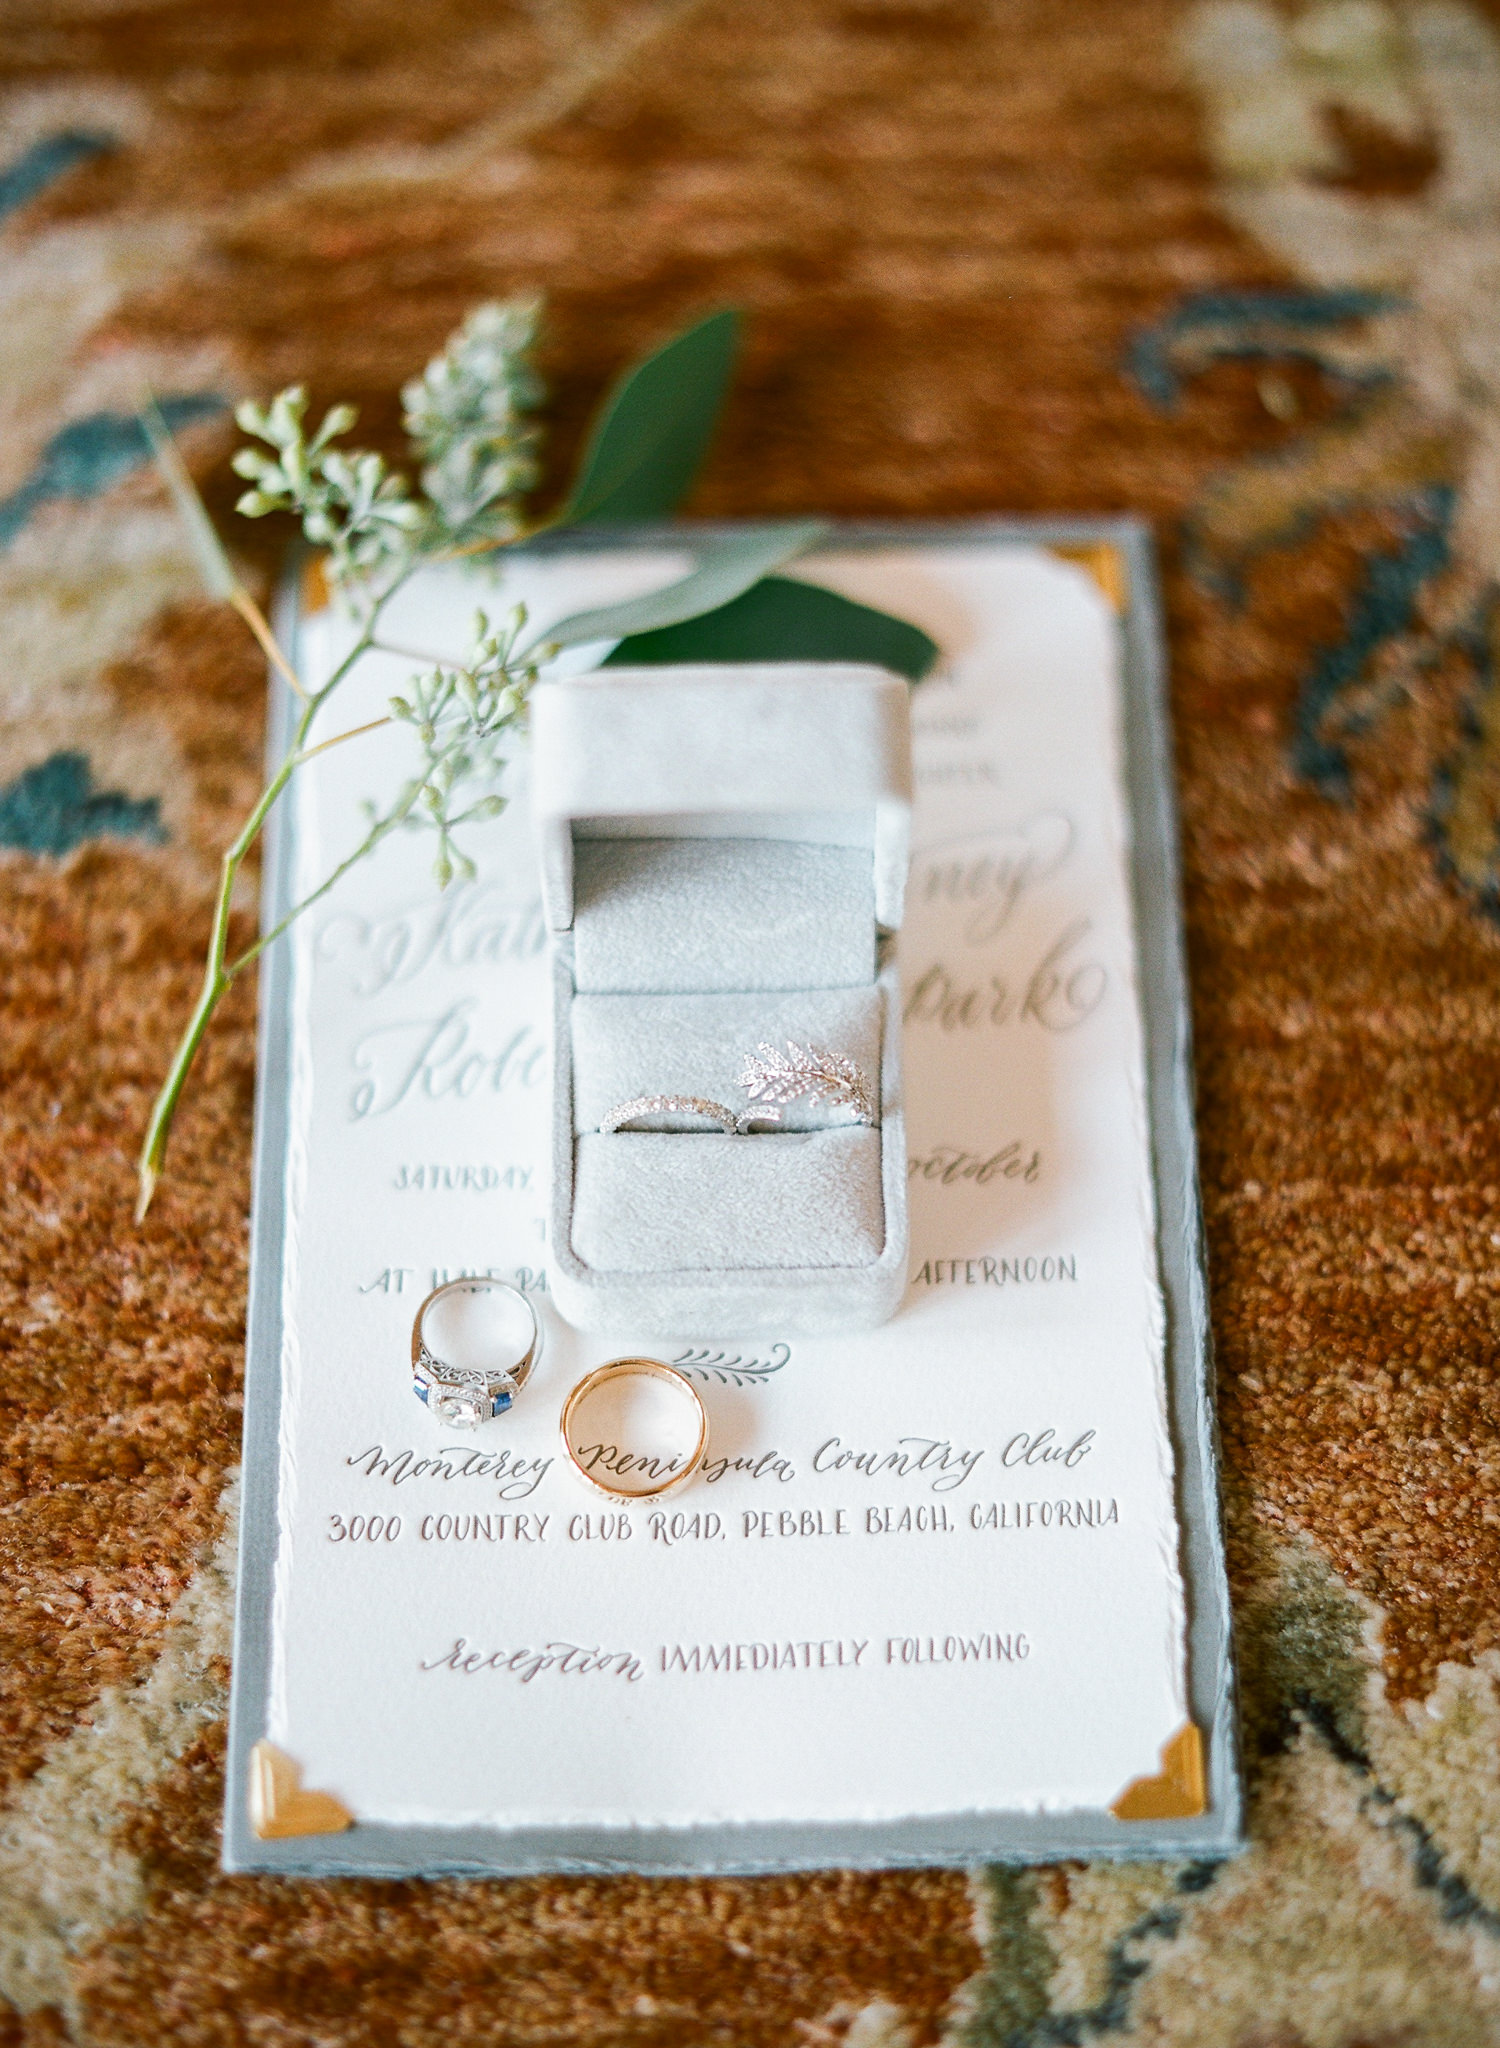 marionhphotography-marion_heurteboust-intimate_wedding_photographer-pebble-beach-california-Monterey-Peninsula-Country-Club-mpcc